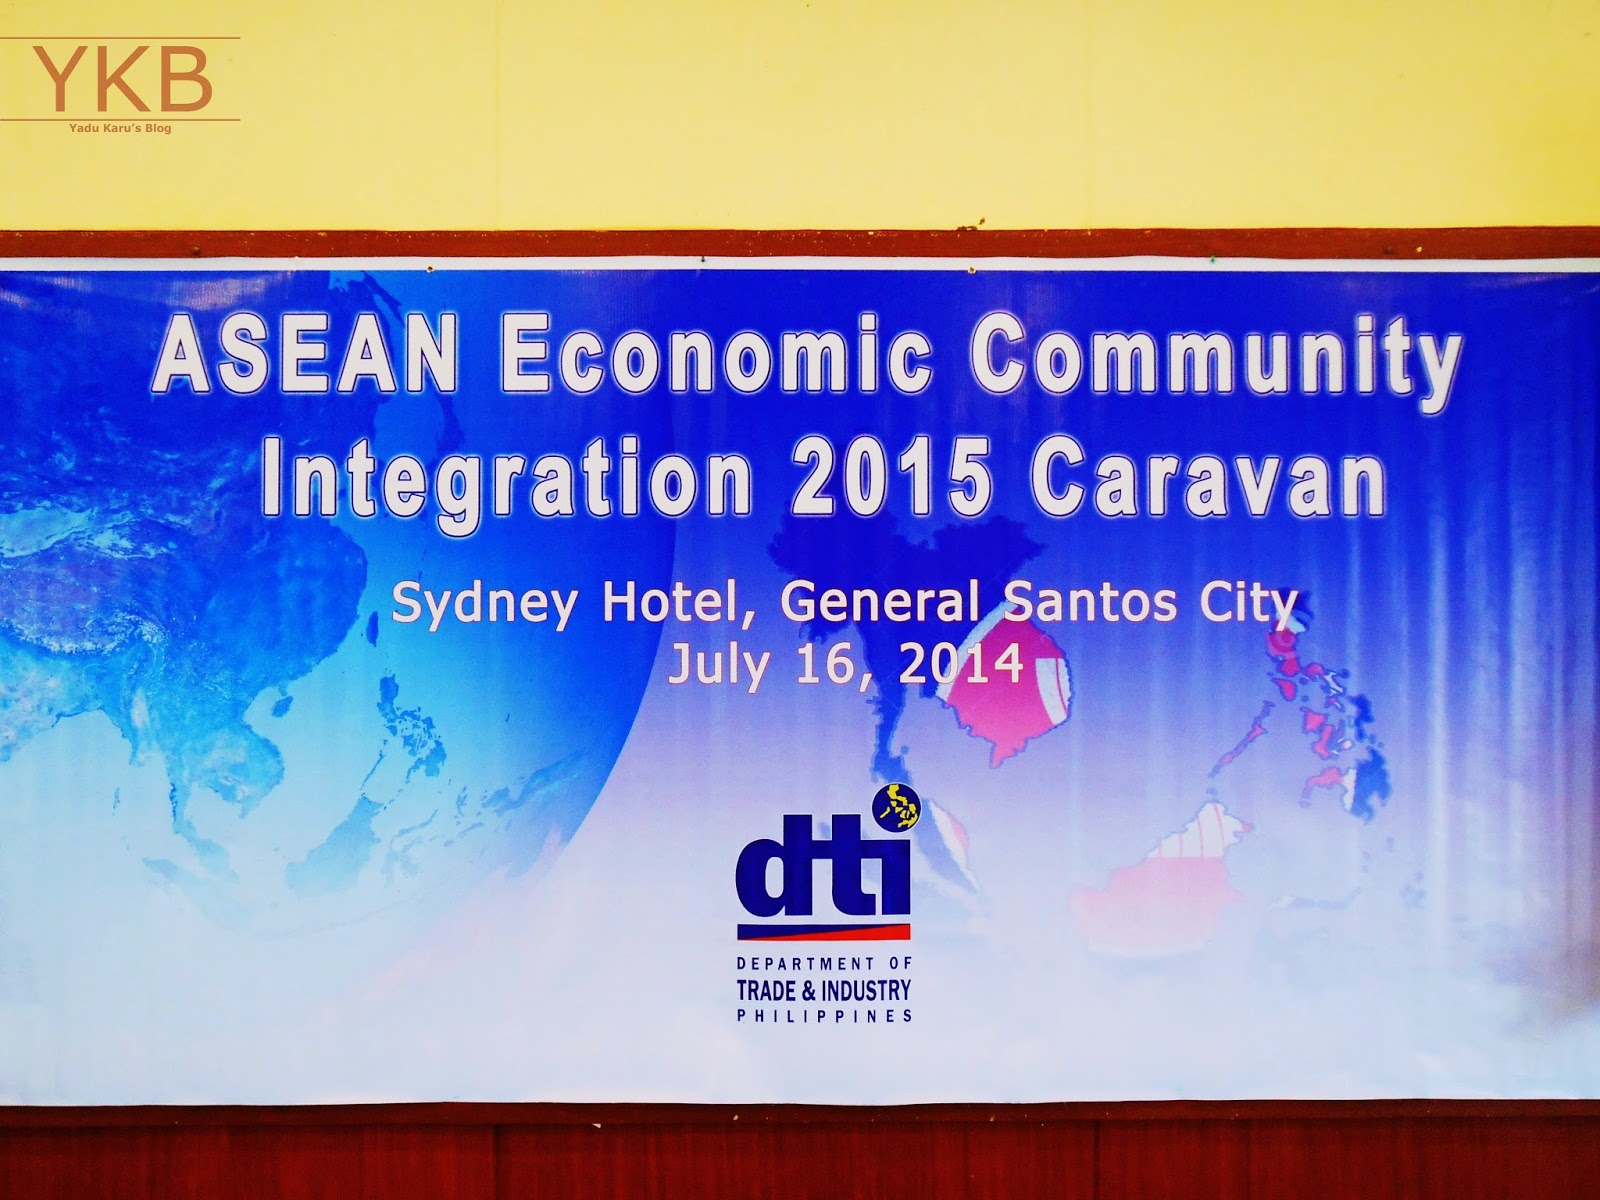 The ASEAN Economic Community Integration 2015